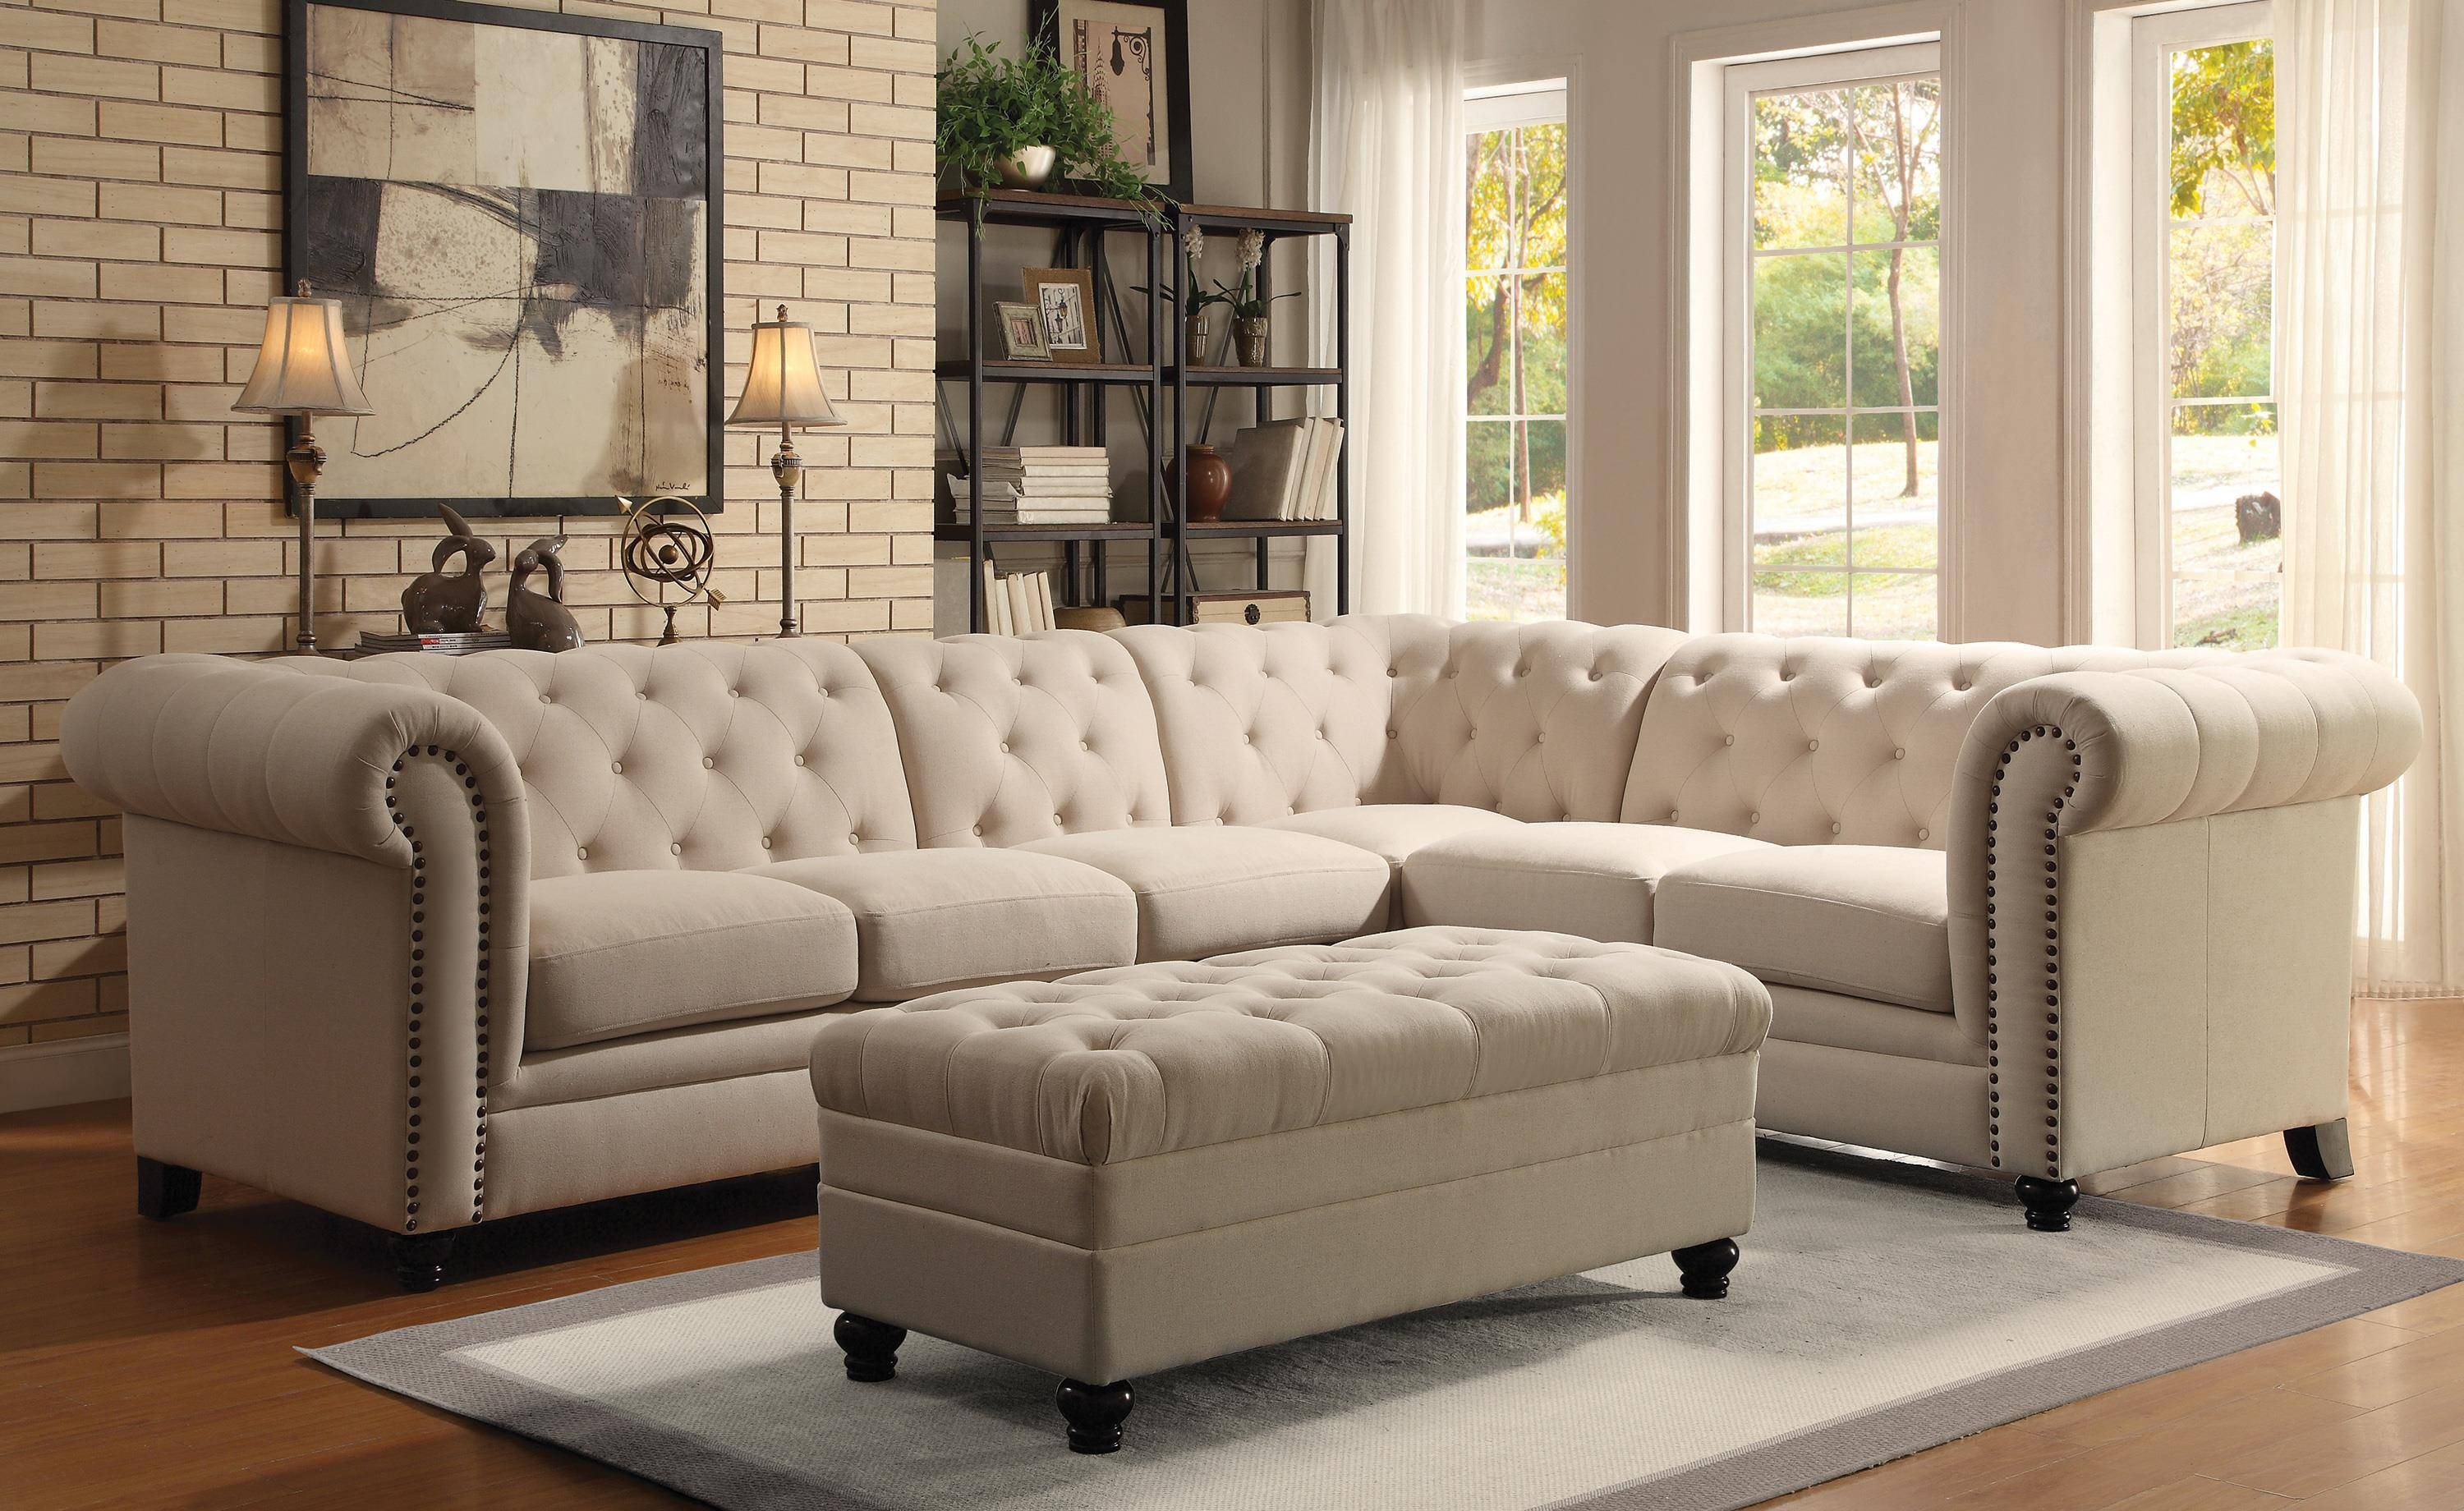 Coaster Roy Button-Tufted Sectional Sofa - Coaster Fine Furniture pertaining to Elegant Sectional Sofas (Image 4 of 30)